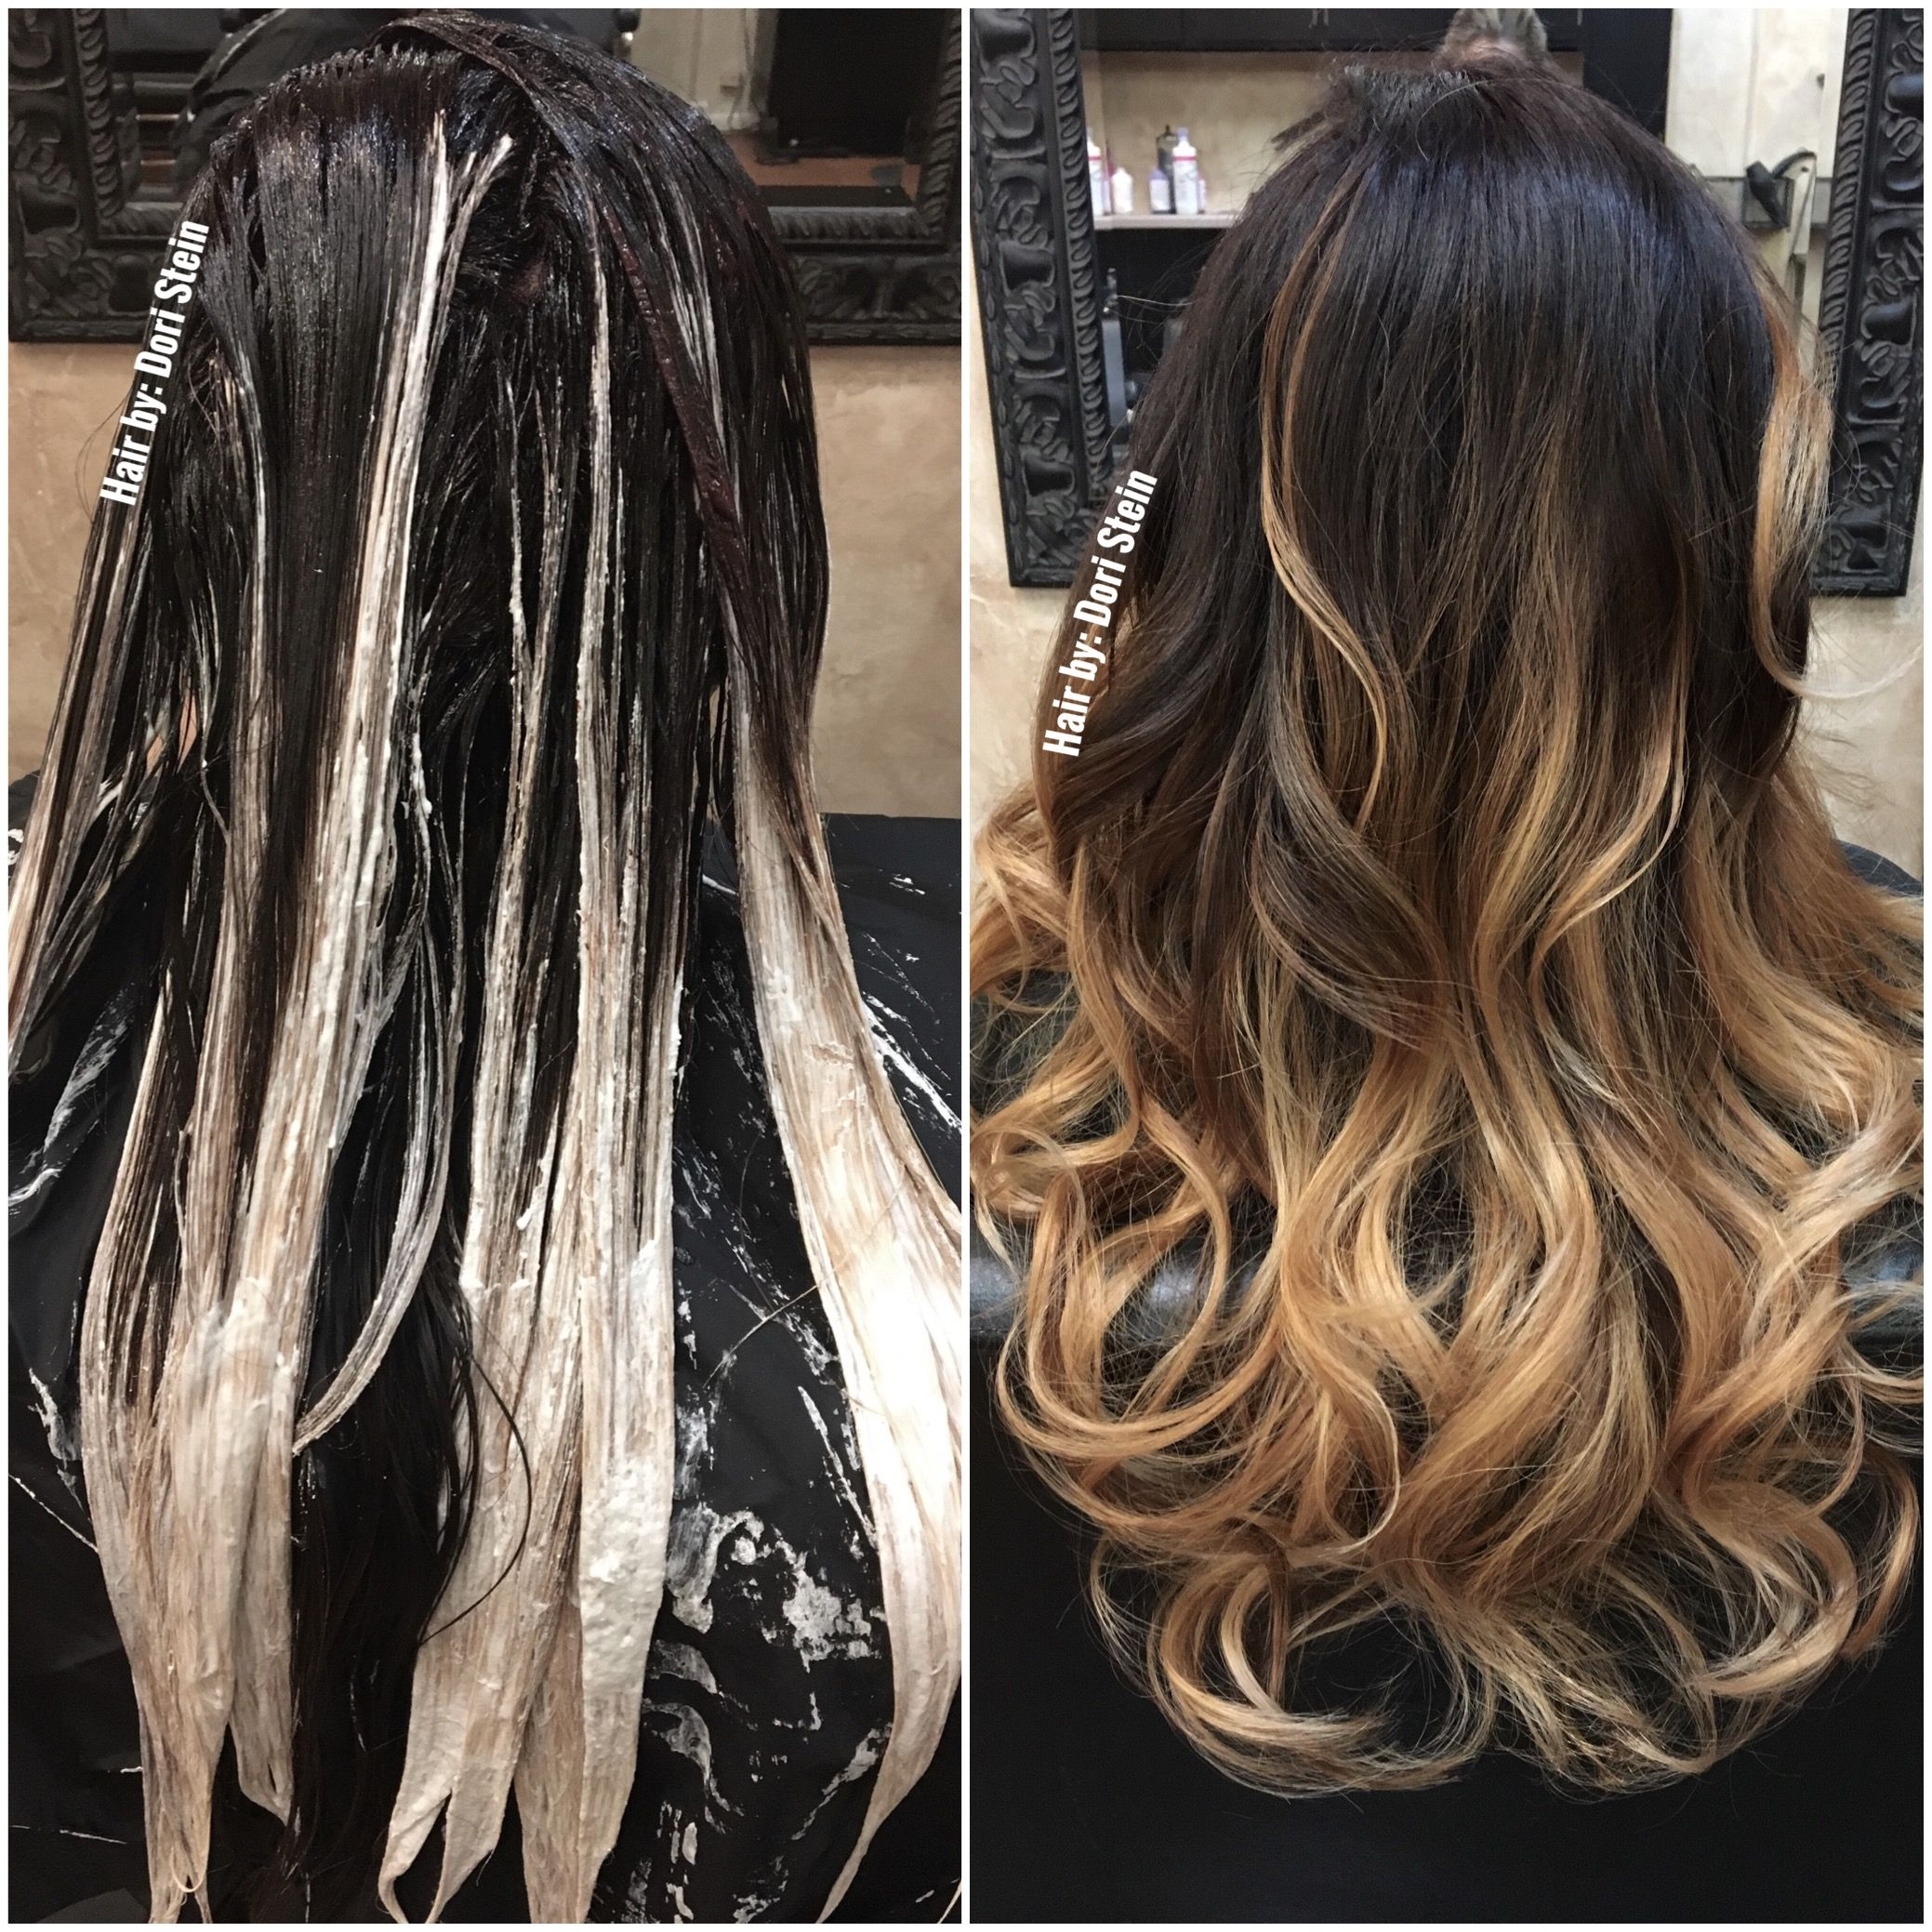 Balayage hair color. During and after the perfect balayage ...